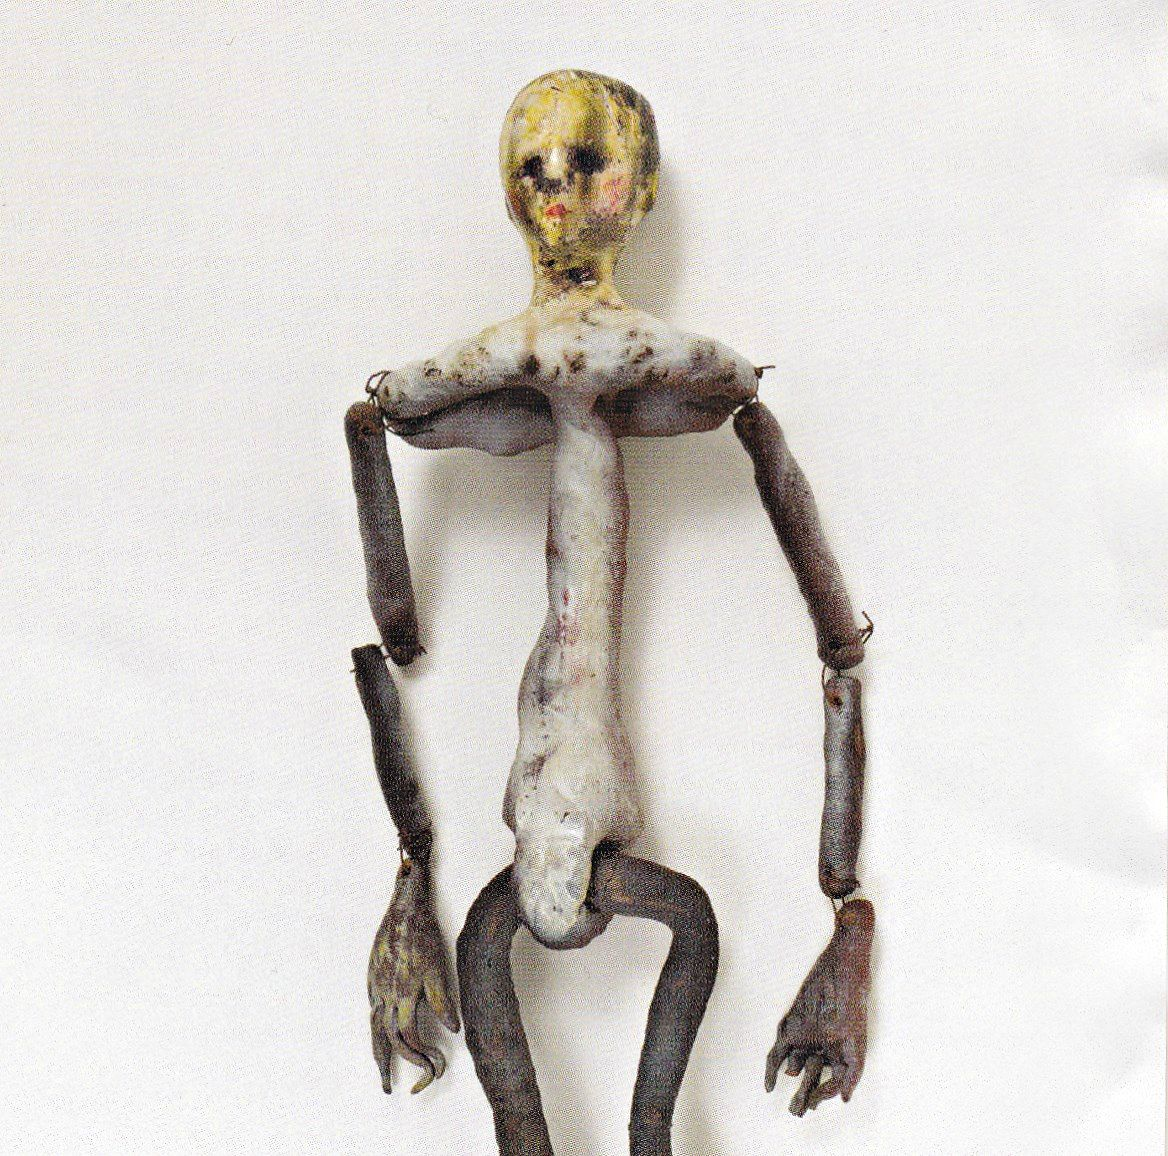 A doll made by Kurt Cobain. This looks like the creature from ...